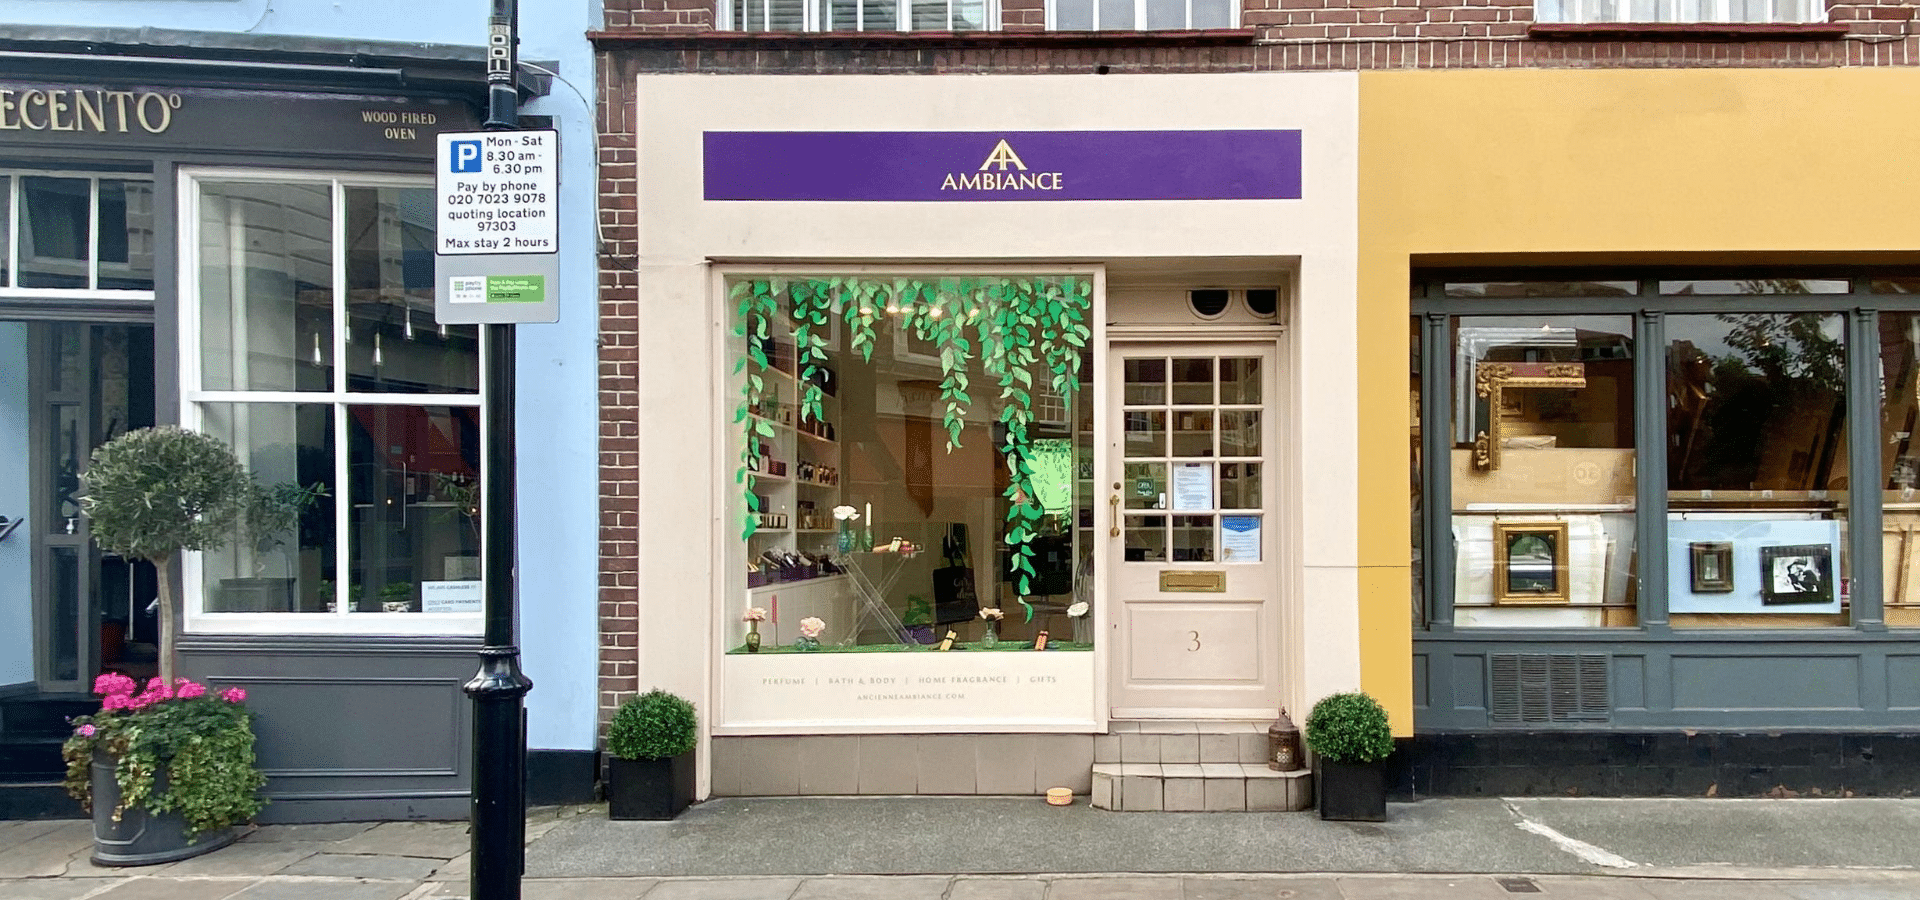 ancienne ambiance luxury scented candles and luxury gifts heart of Chelsea, London - goddess shop front - beauty shortlist awards winners